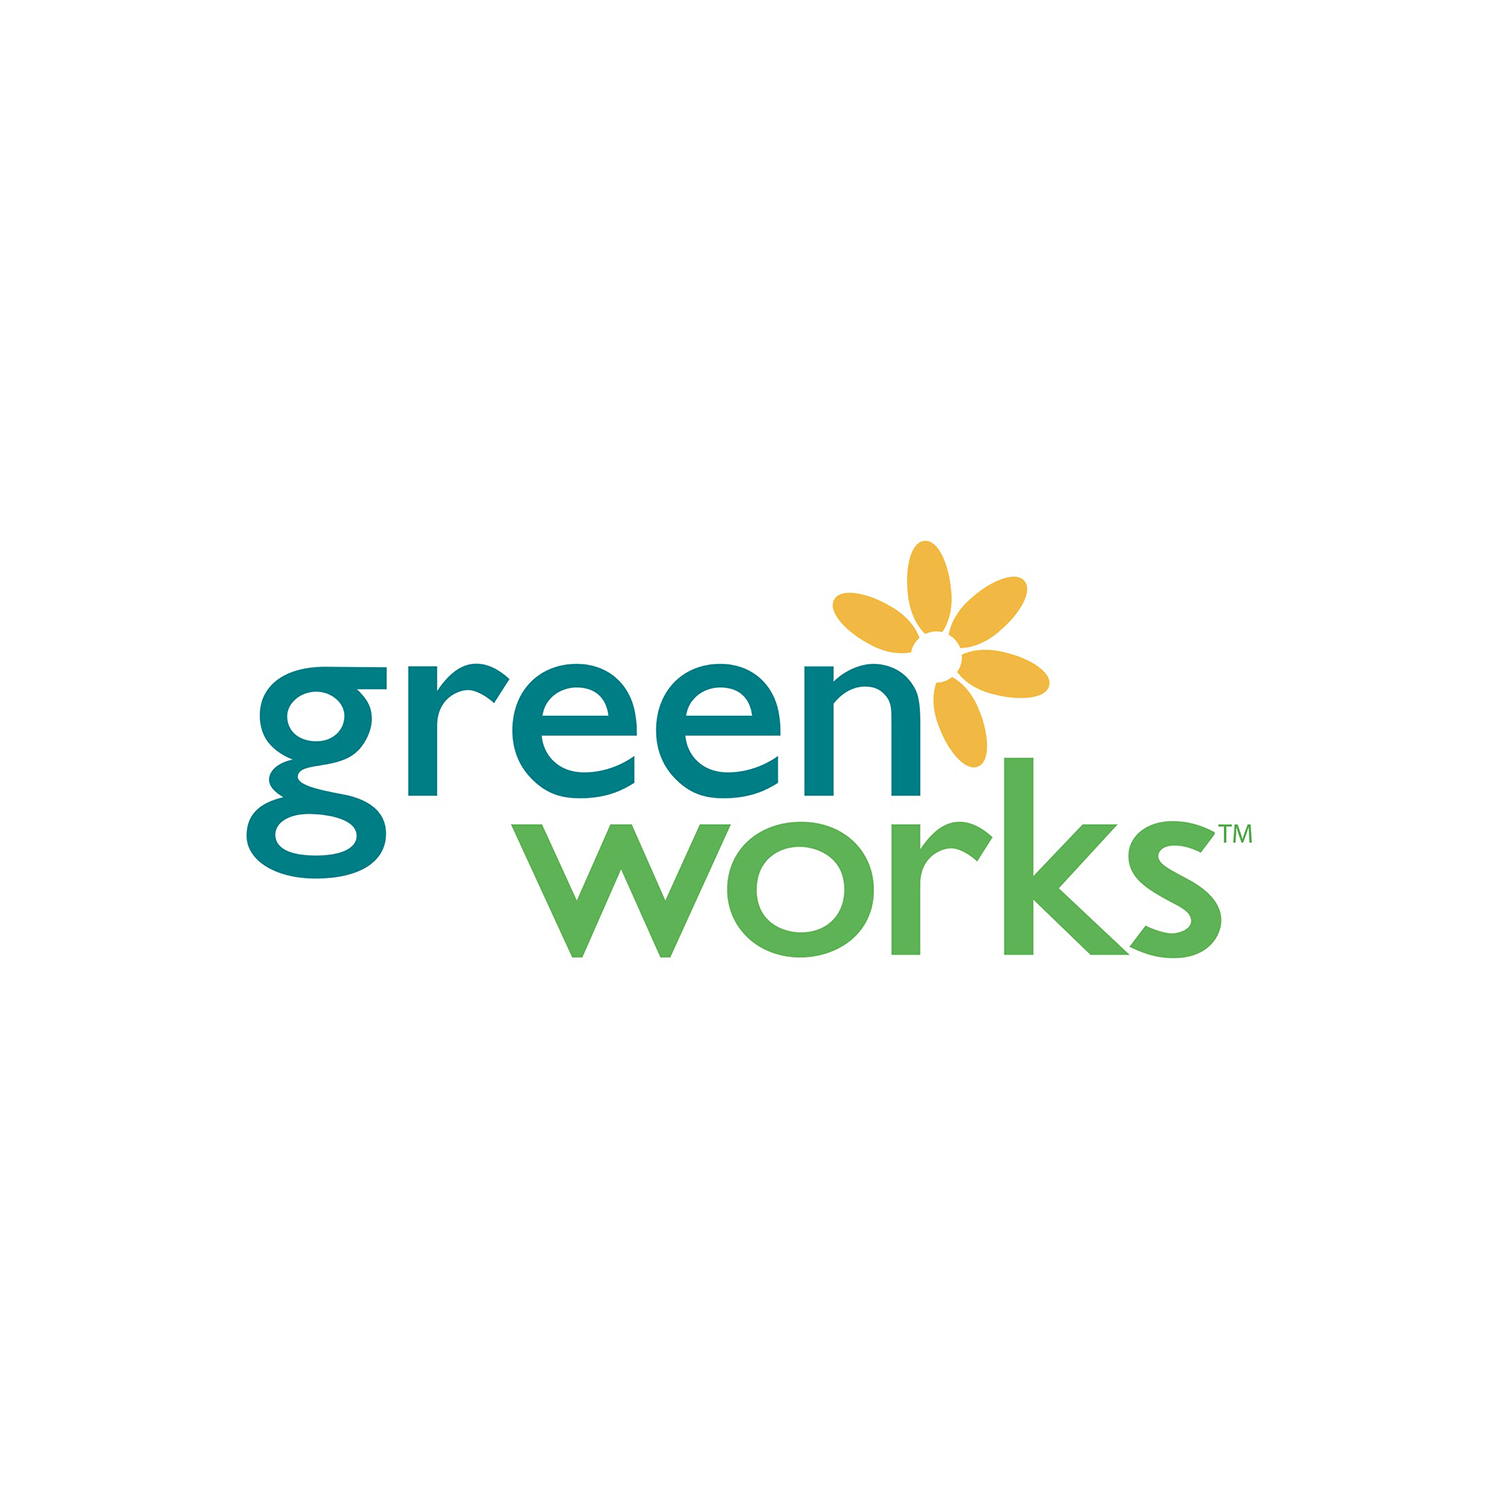 Green Works - Green Work's chlorine-free bleach and toilet bowl cleaner has a light smell without the harsh chemicals.